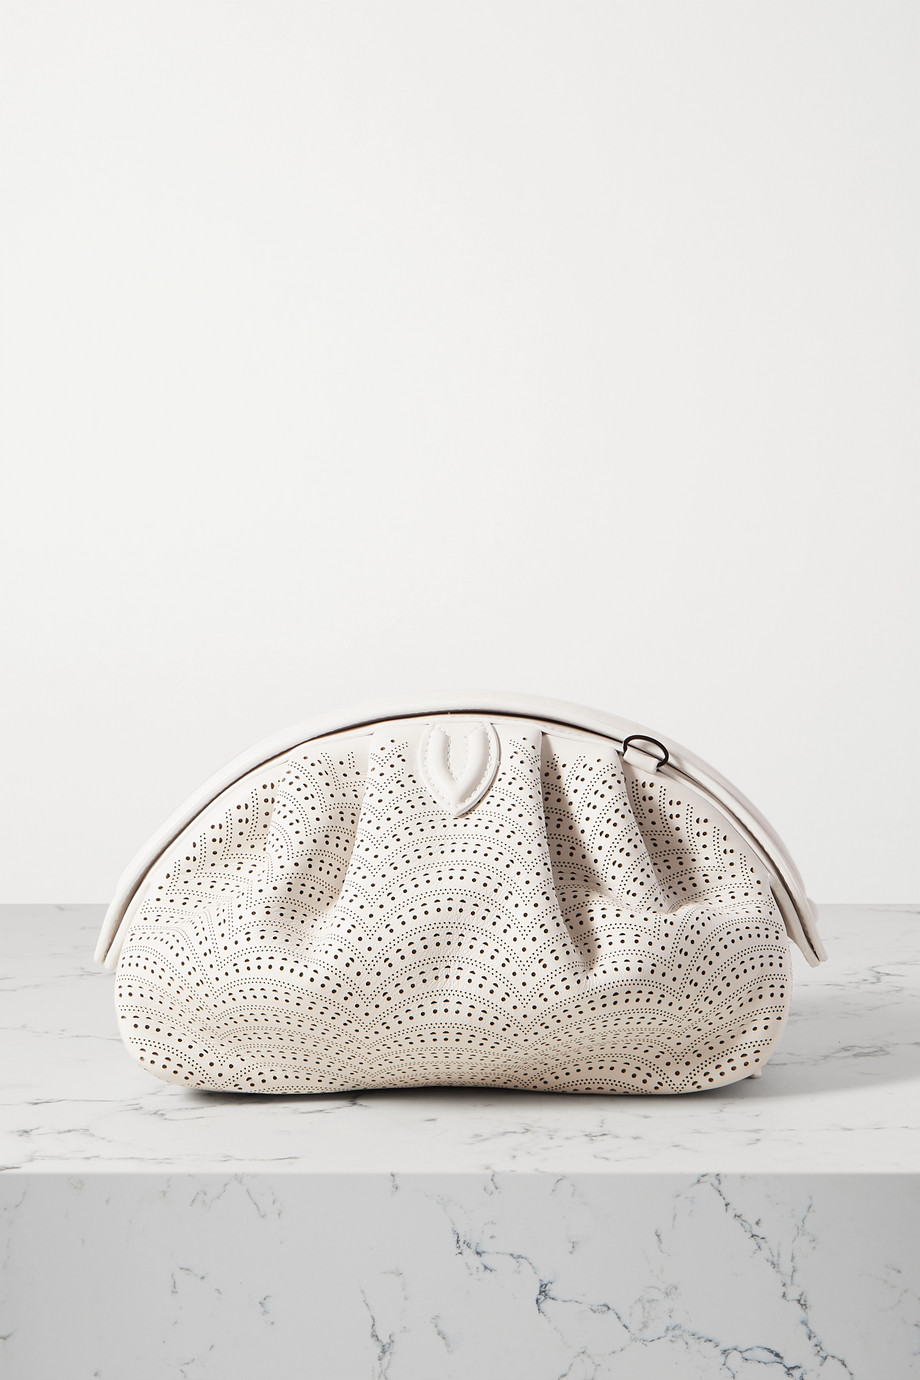 ALAÏA Samia 21 laser-cut leather clutch